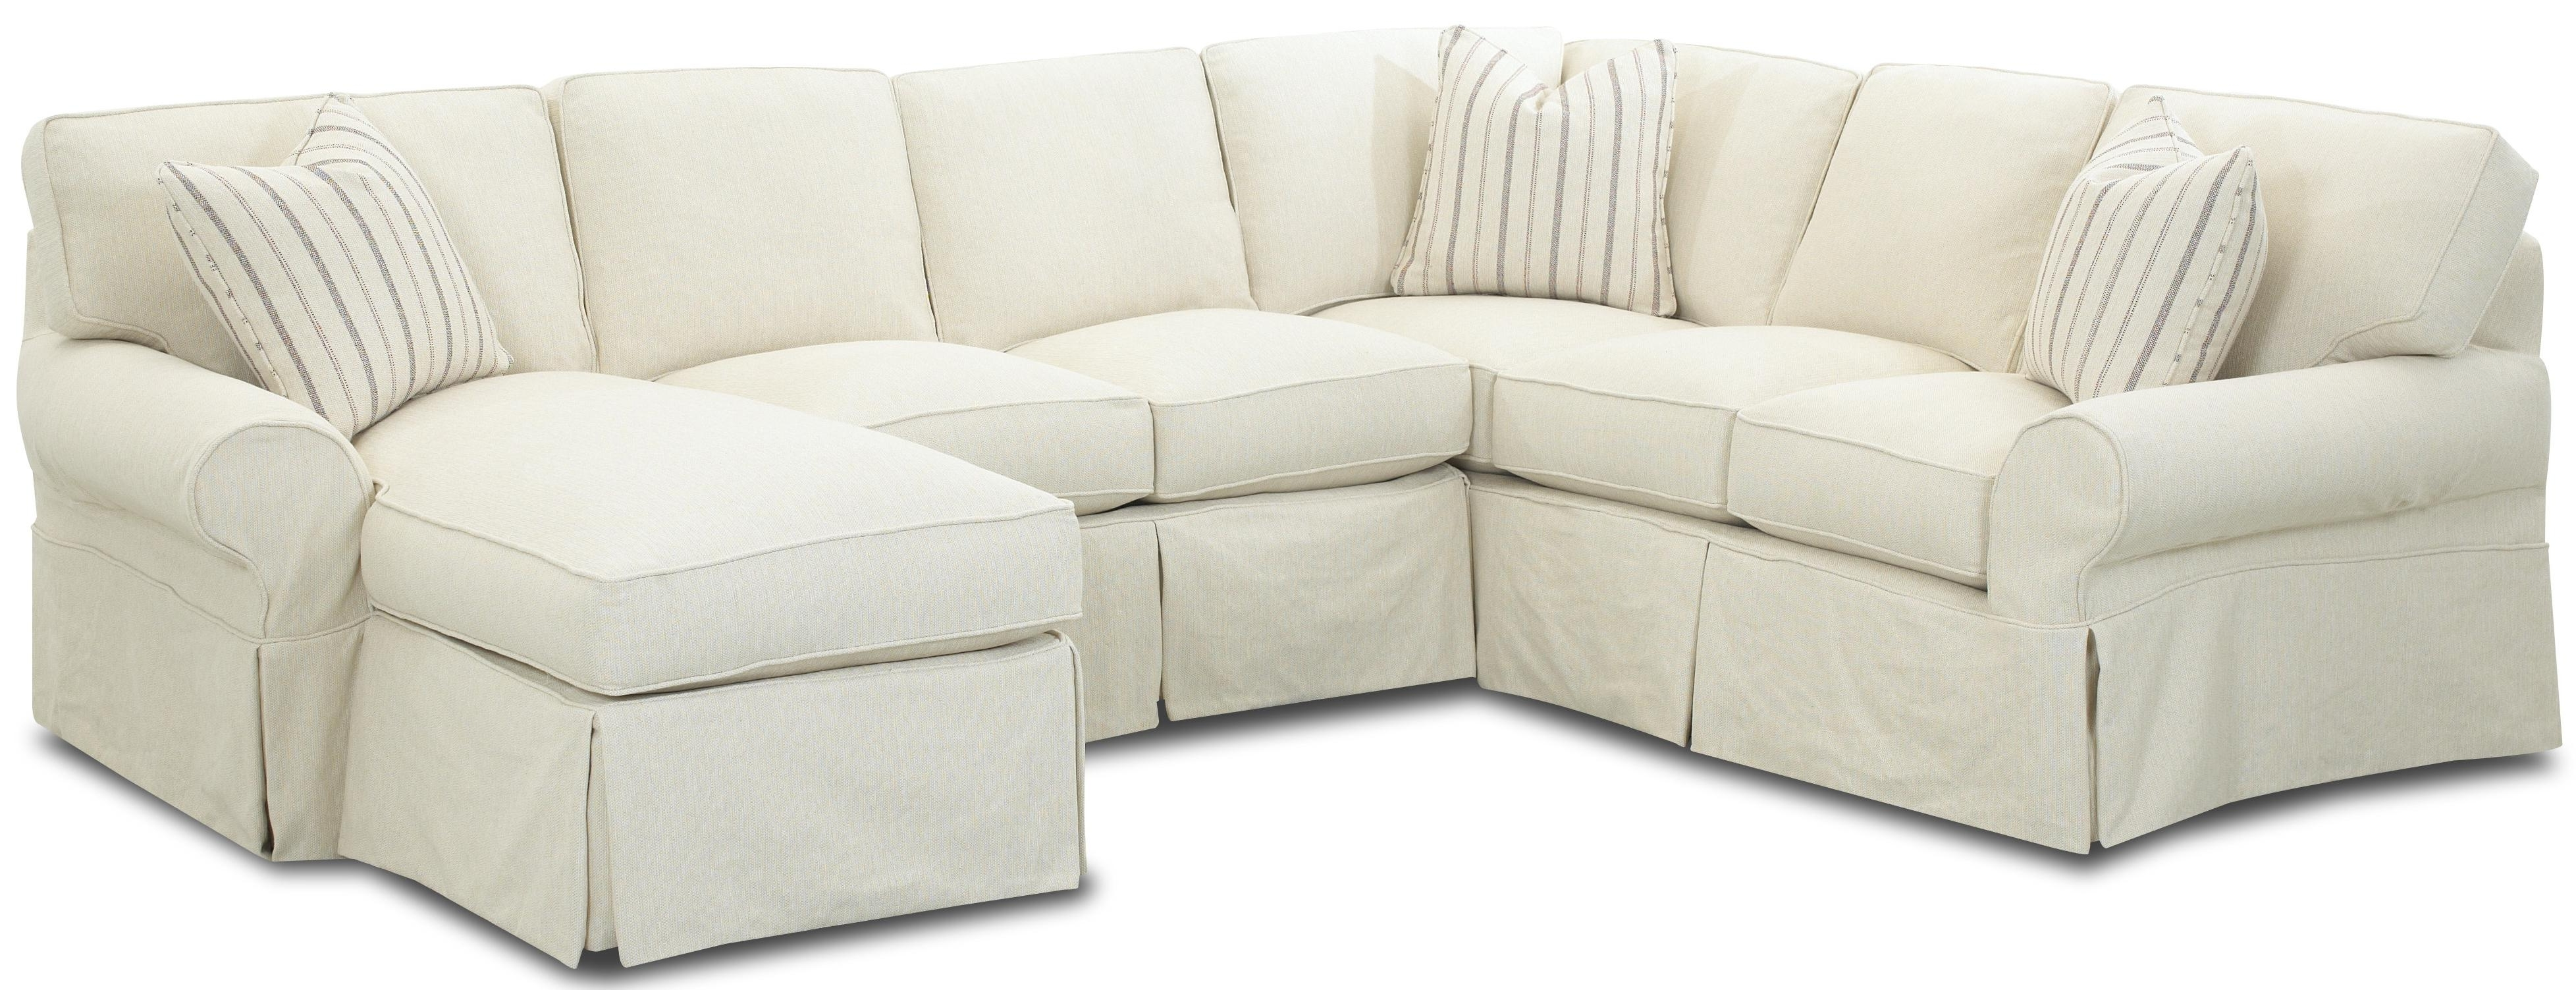 Well Known Slipcovers For Sectional Sofas With Chaise Regarding Awesome Slipcover Sectional Sofa With Chaise 91 For Modern Sofa (View 15 of 15)